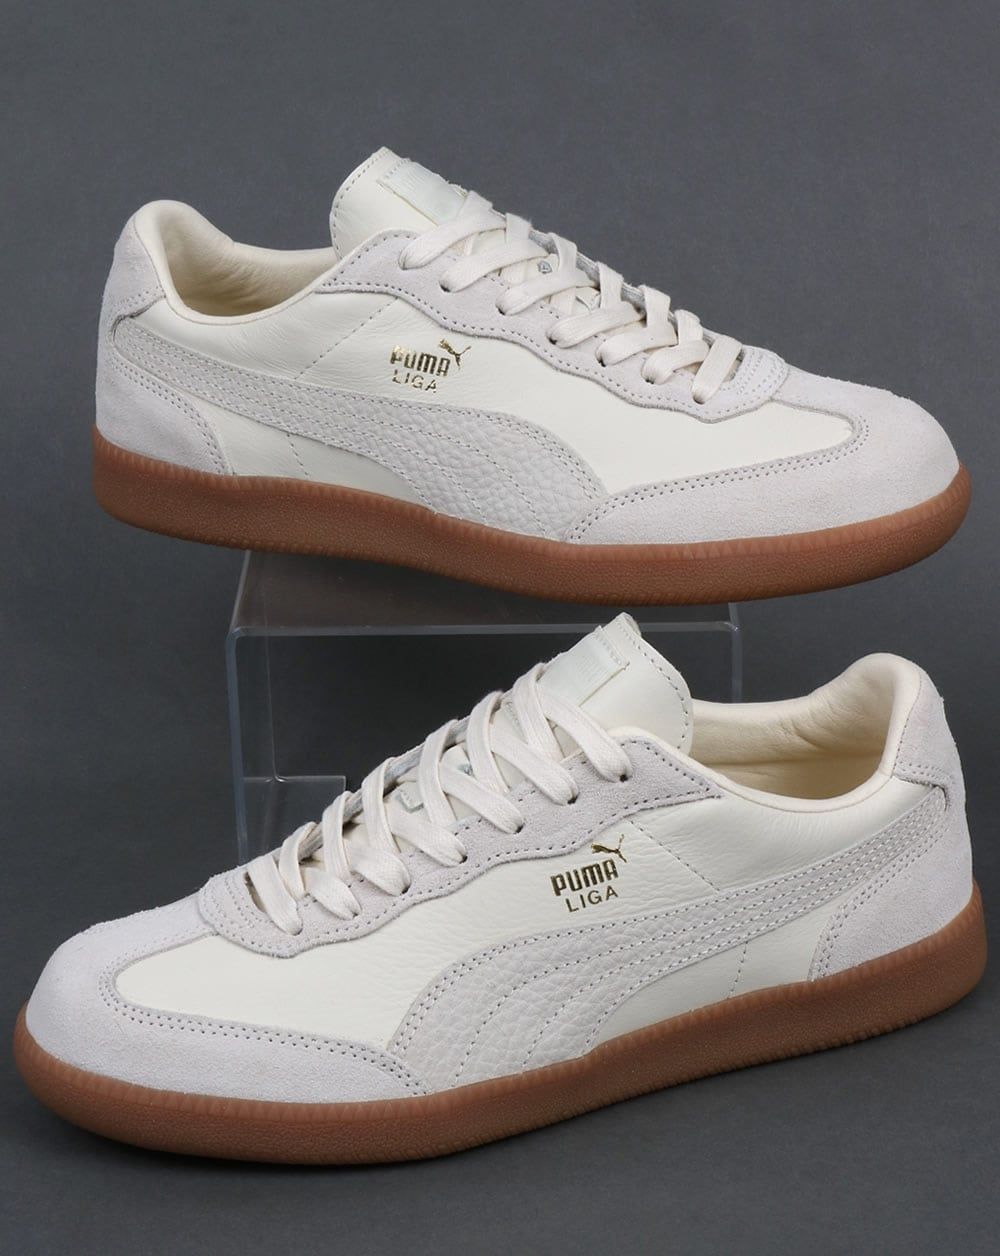 new concept ac3bc 3ab87 Puma Liga Leather Trainers Whisper White